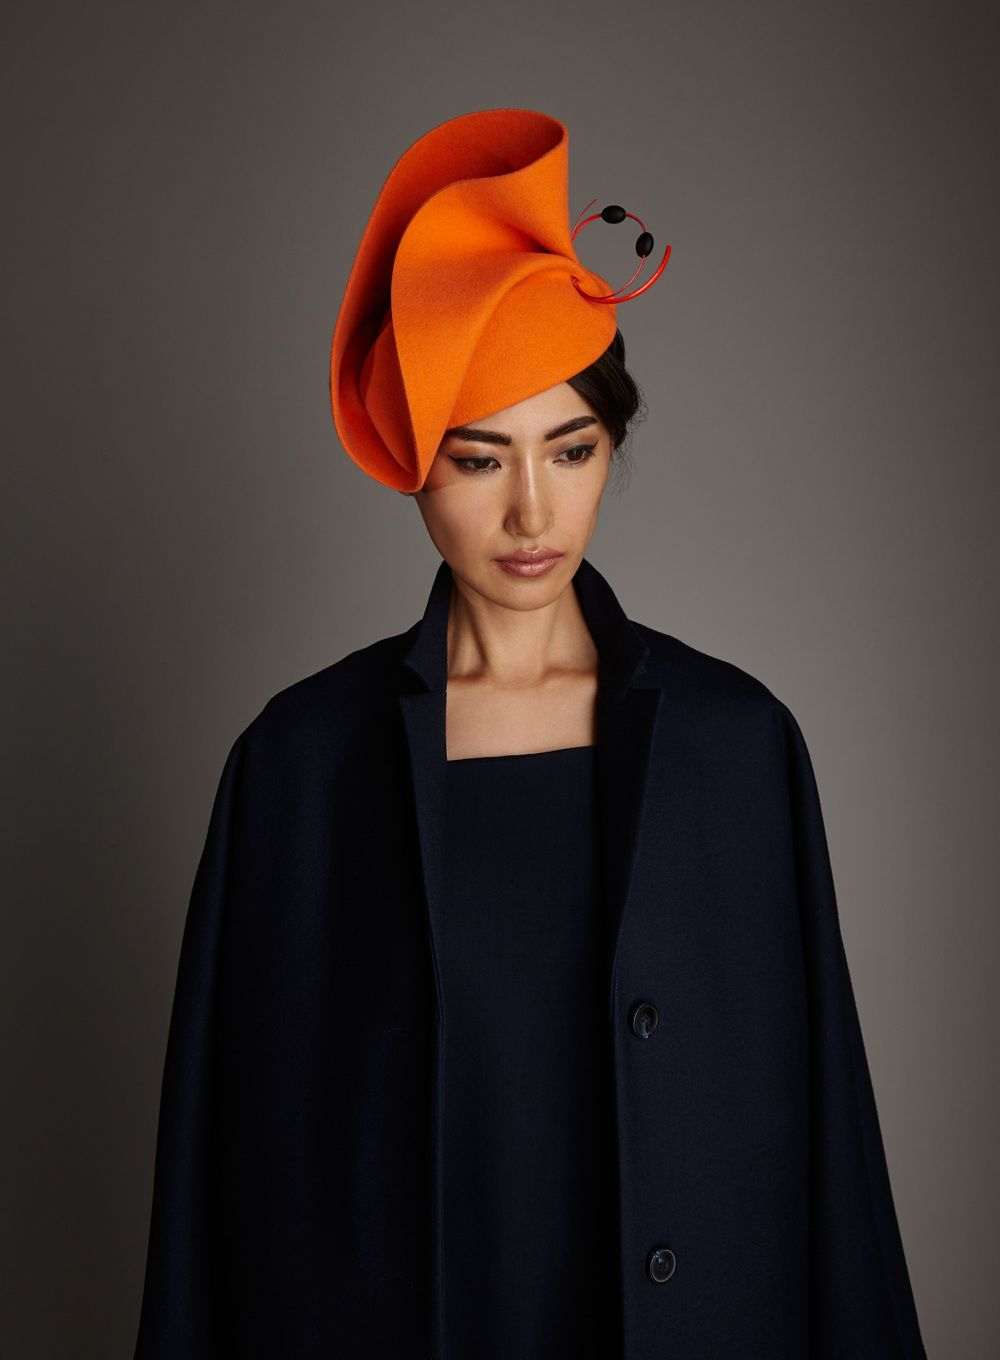 AW15 Lock & Co Hatters - Lucy Alston